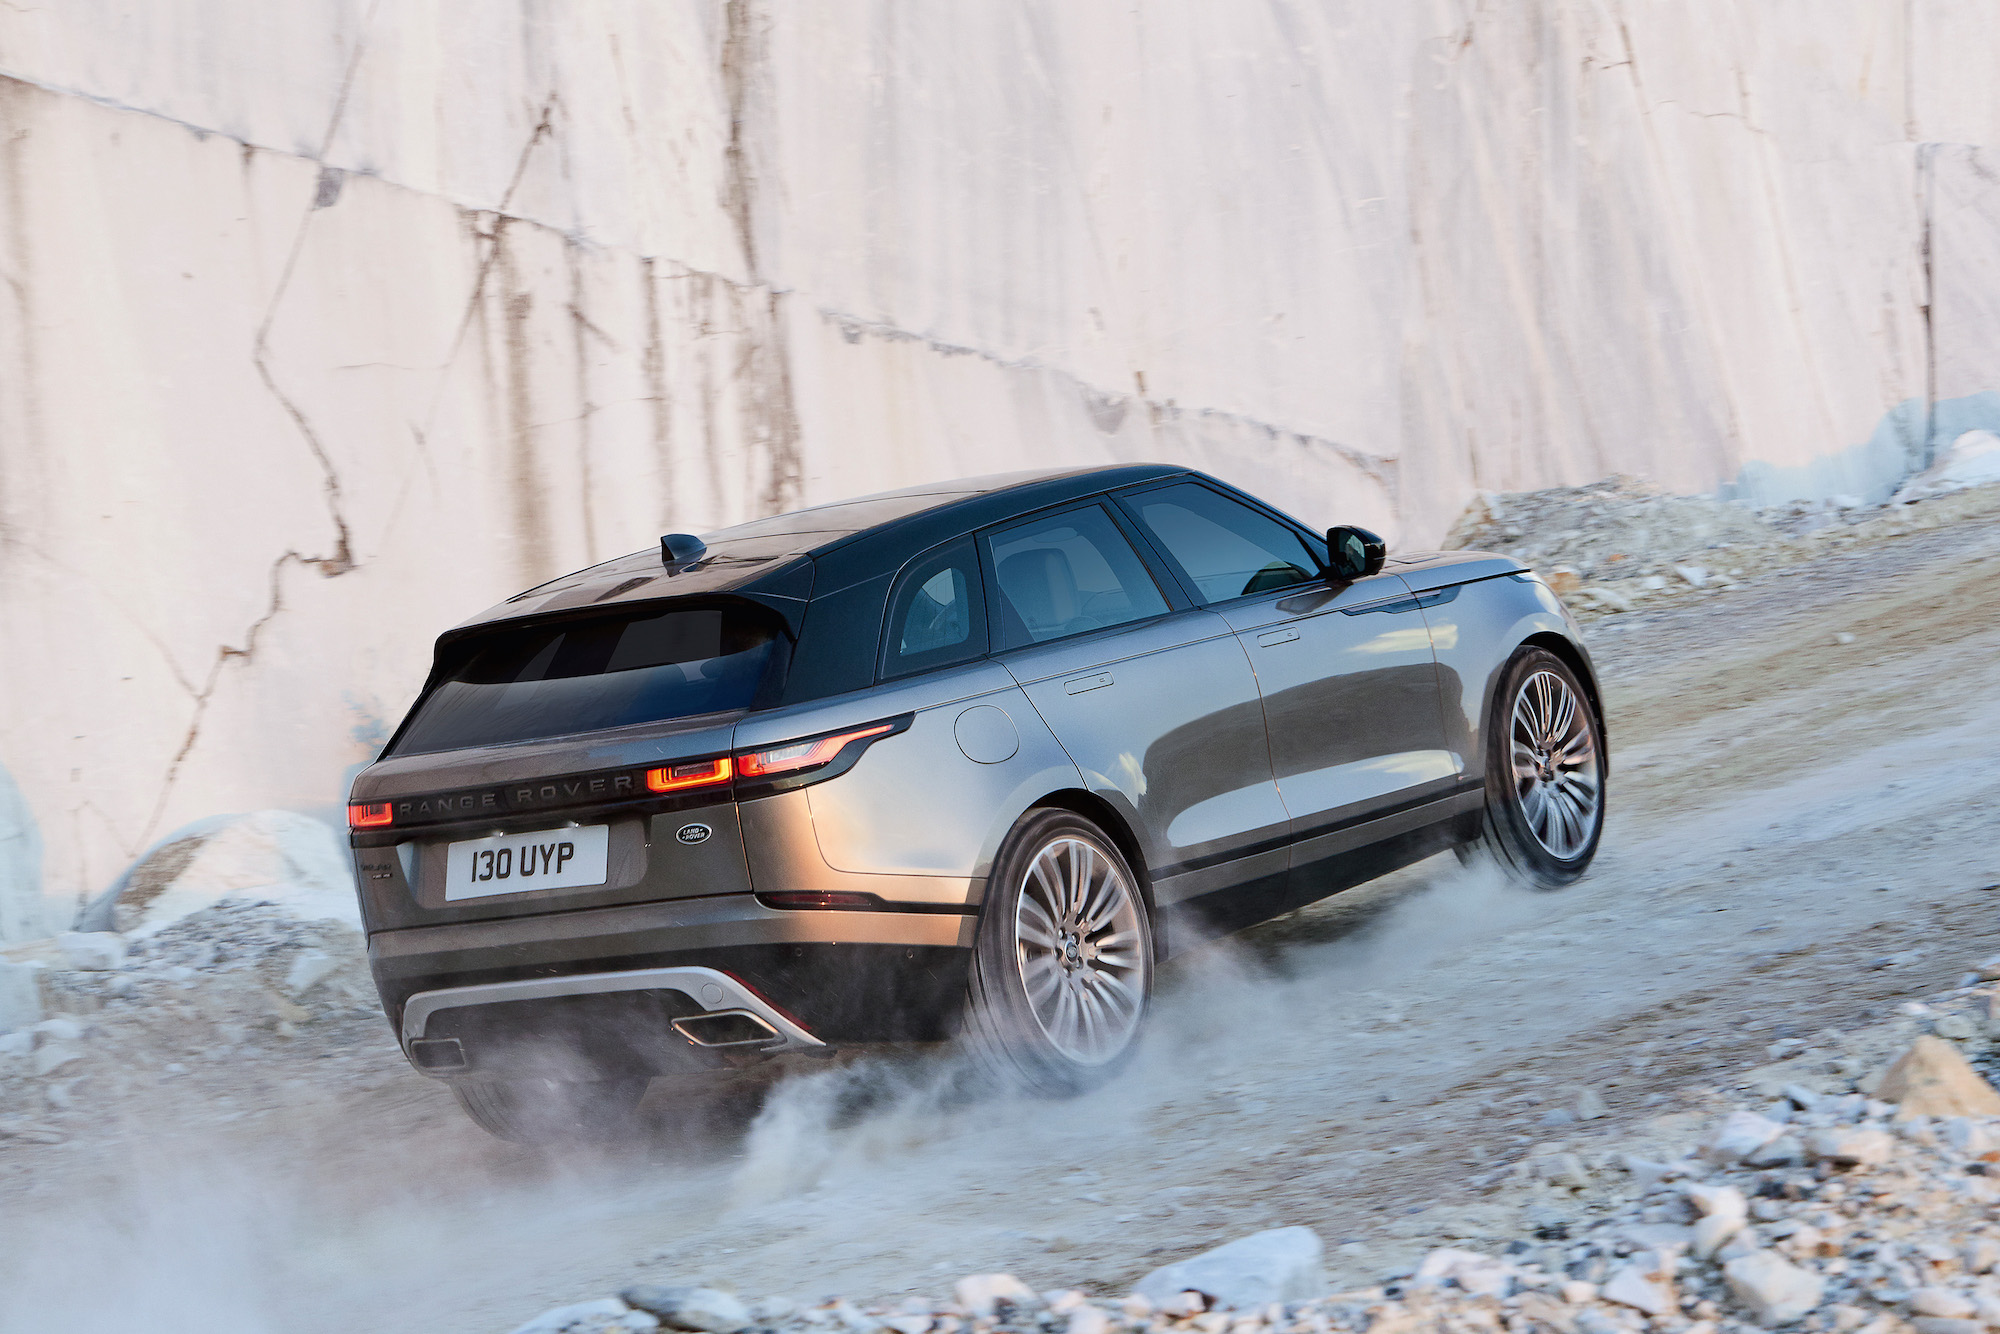 announces land rover diesel for ca general range prices models new landrover autos news